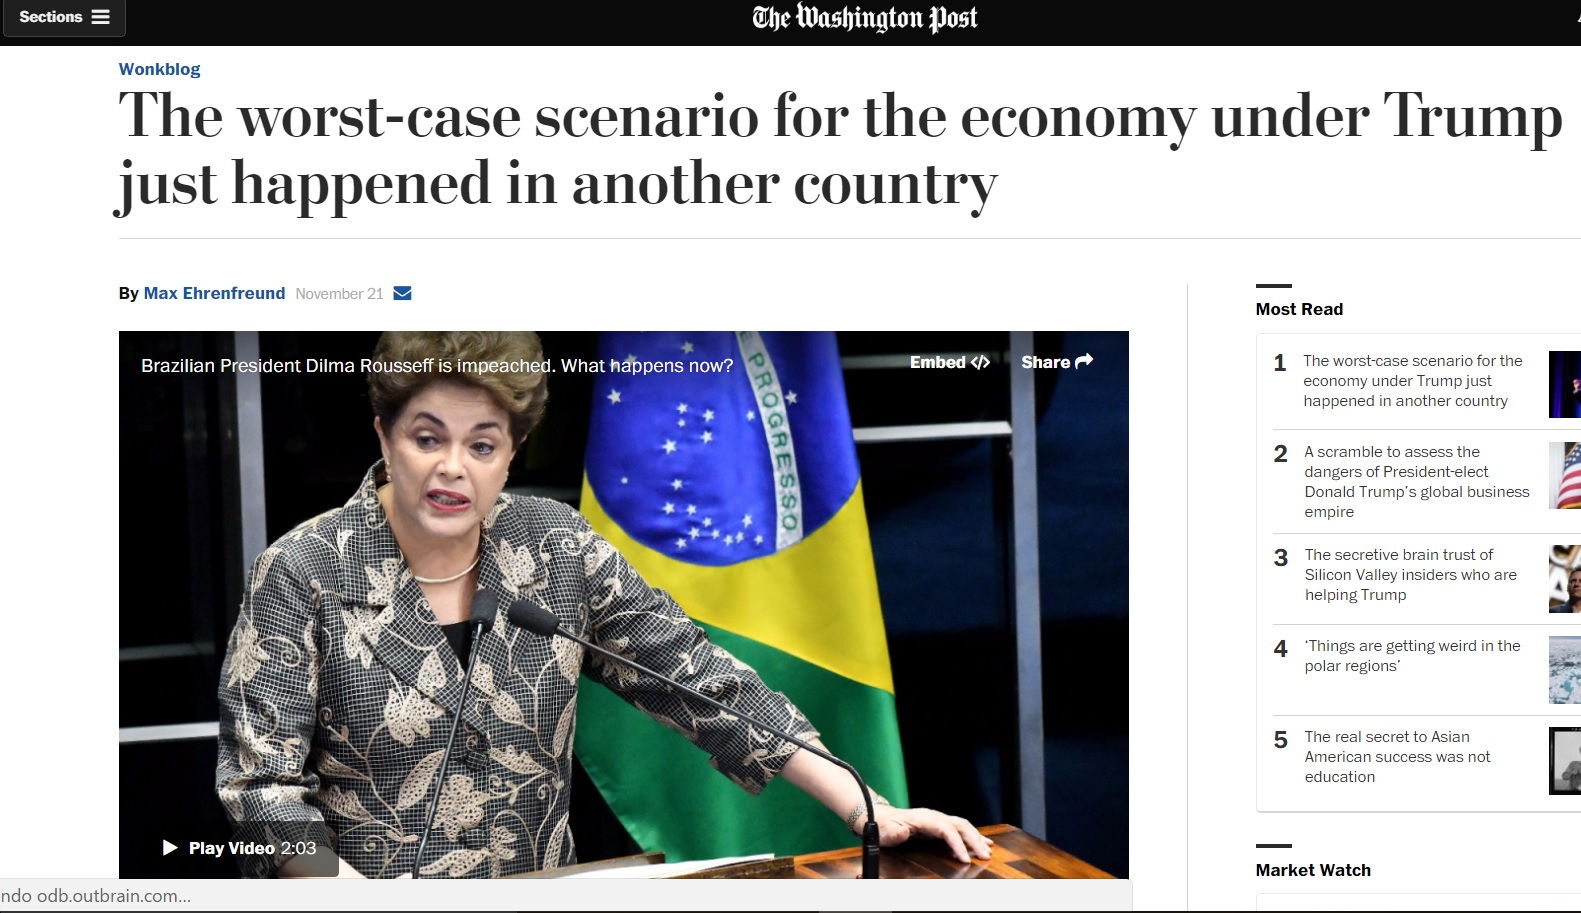 'Washington Post' compara Trump a 'populismo' de Dilma Rousseff